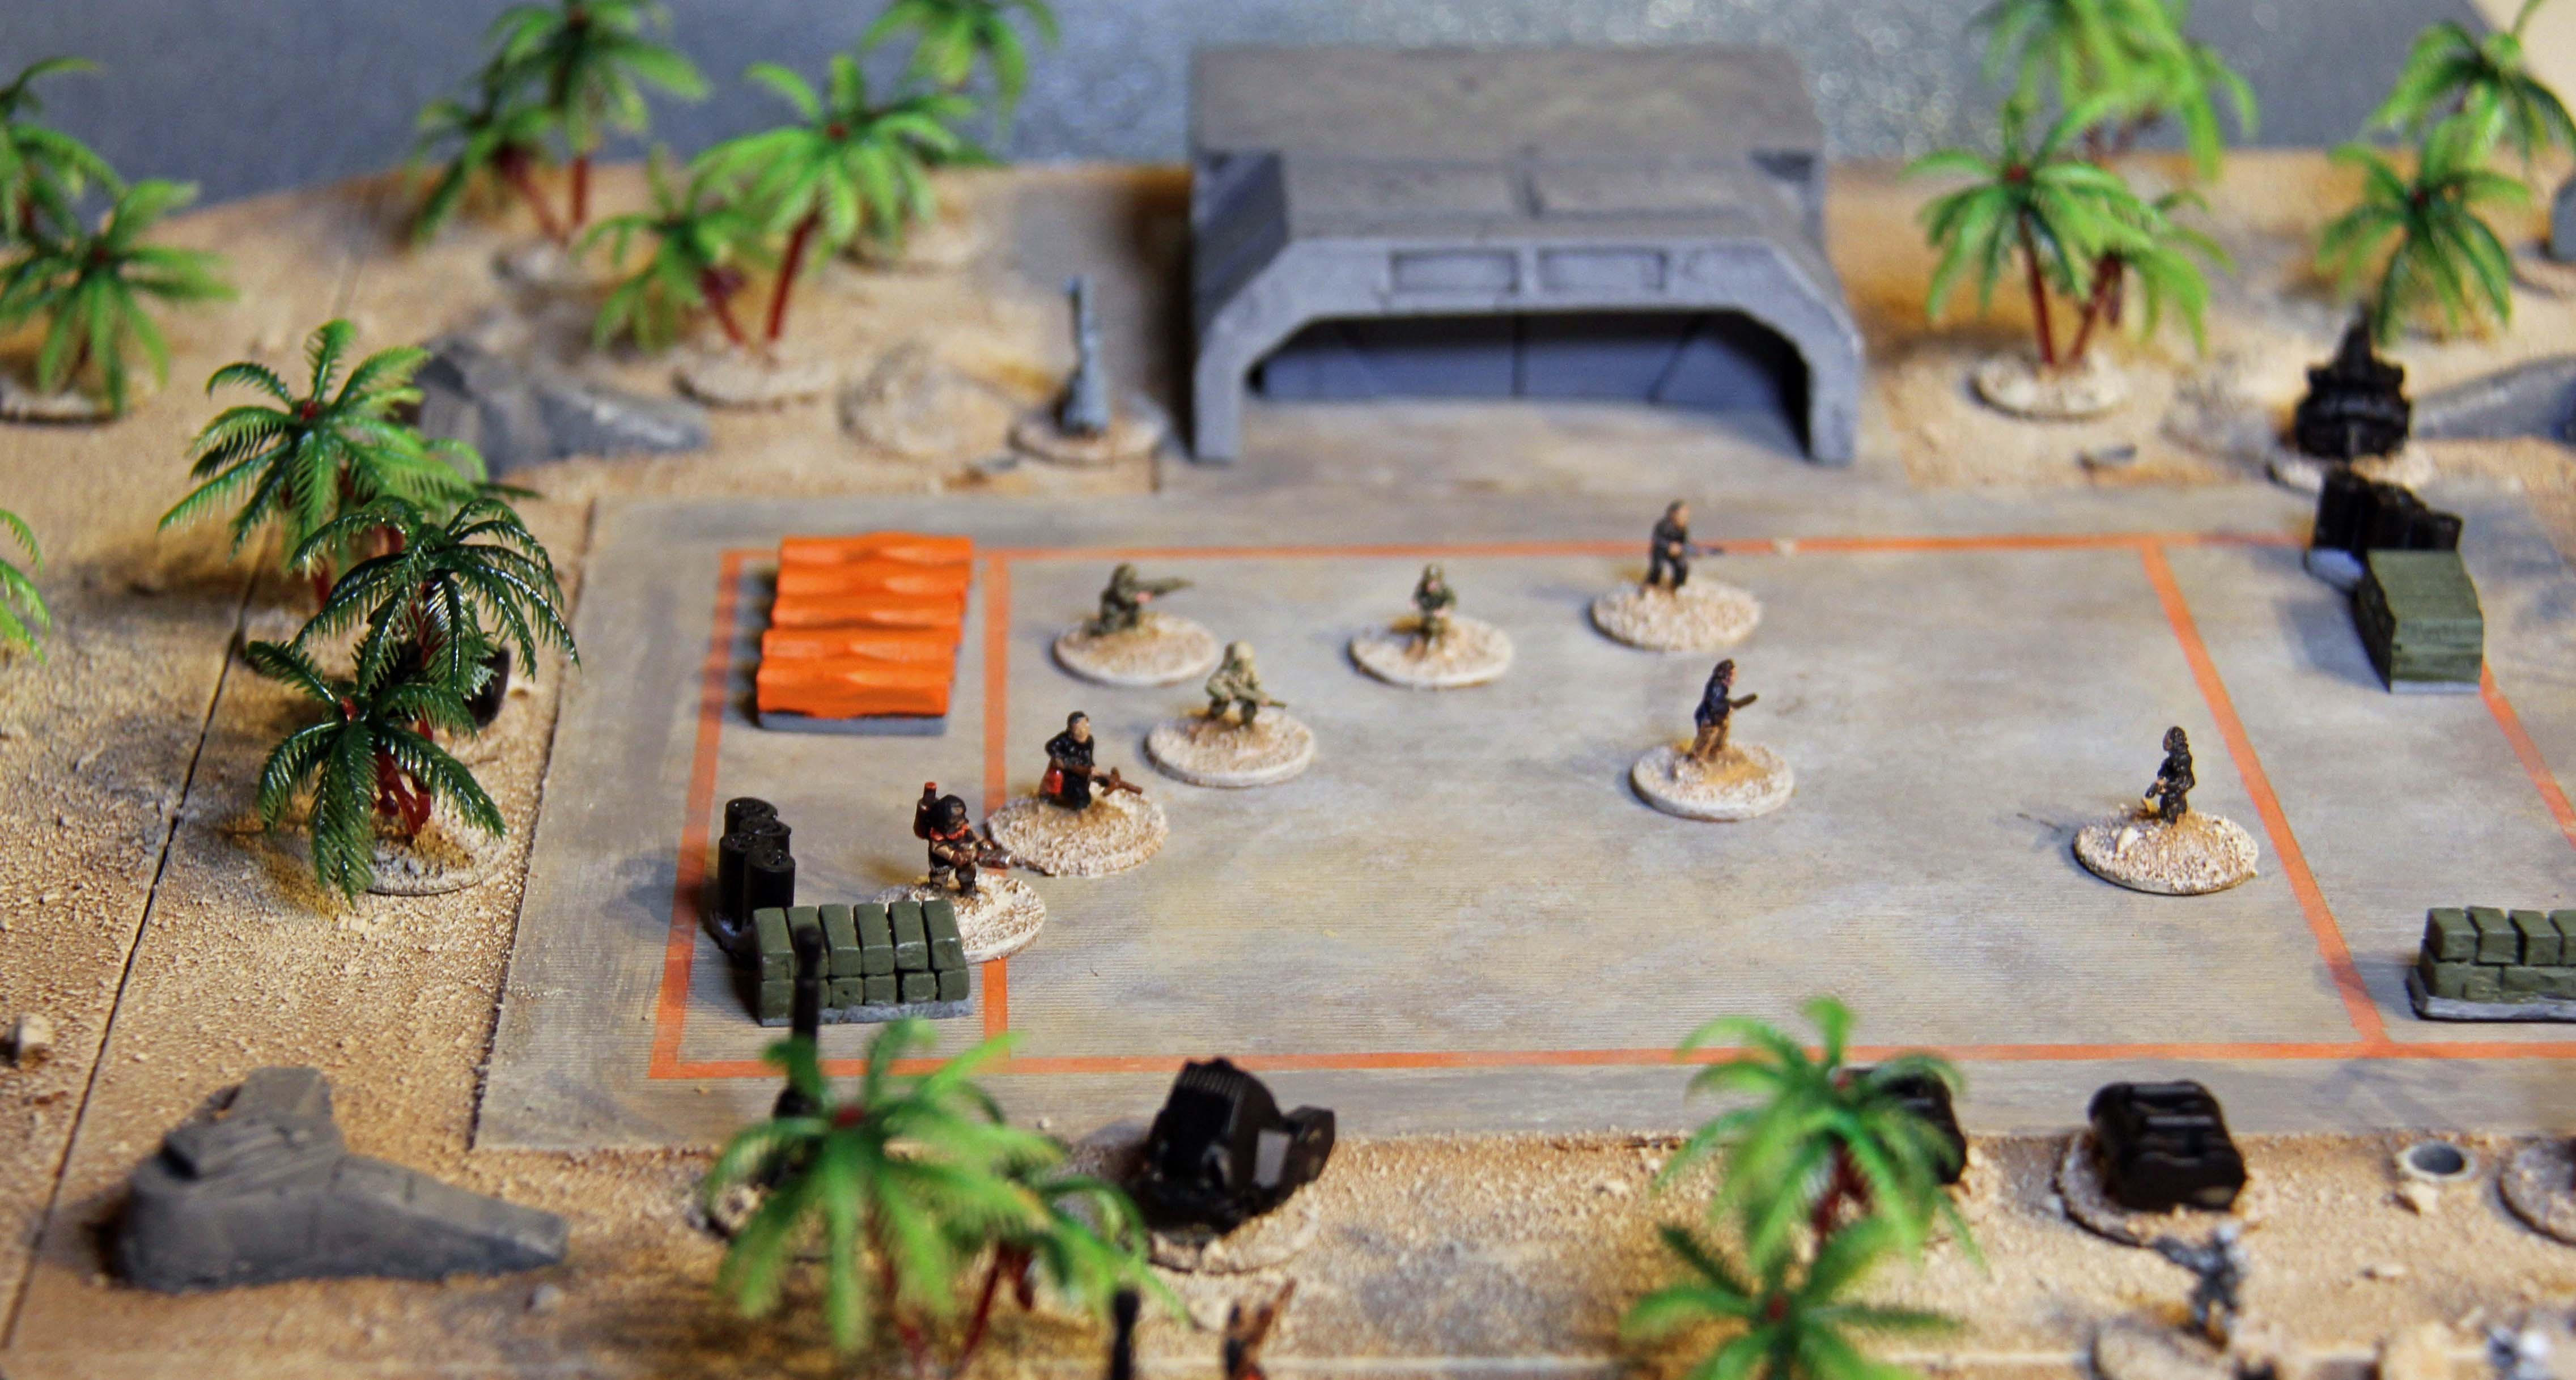 Mick S Star Wars Legion Project Update 28 3 2020 At St With Correction